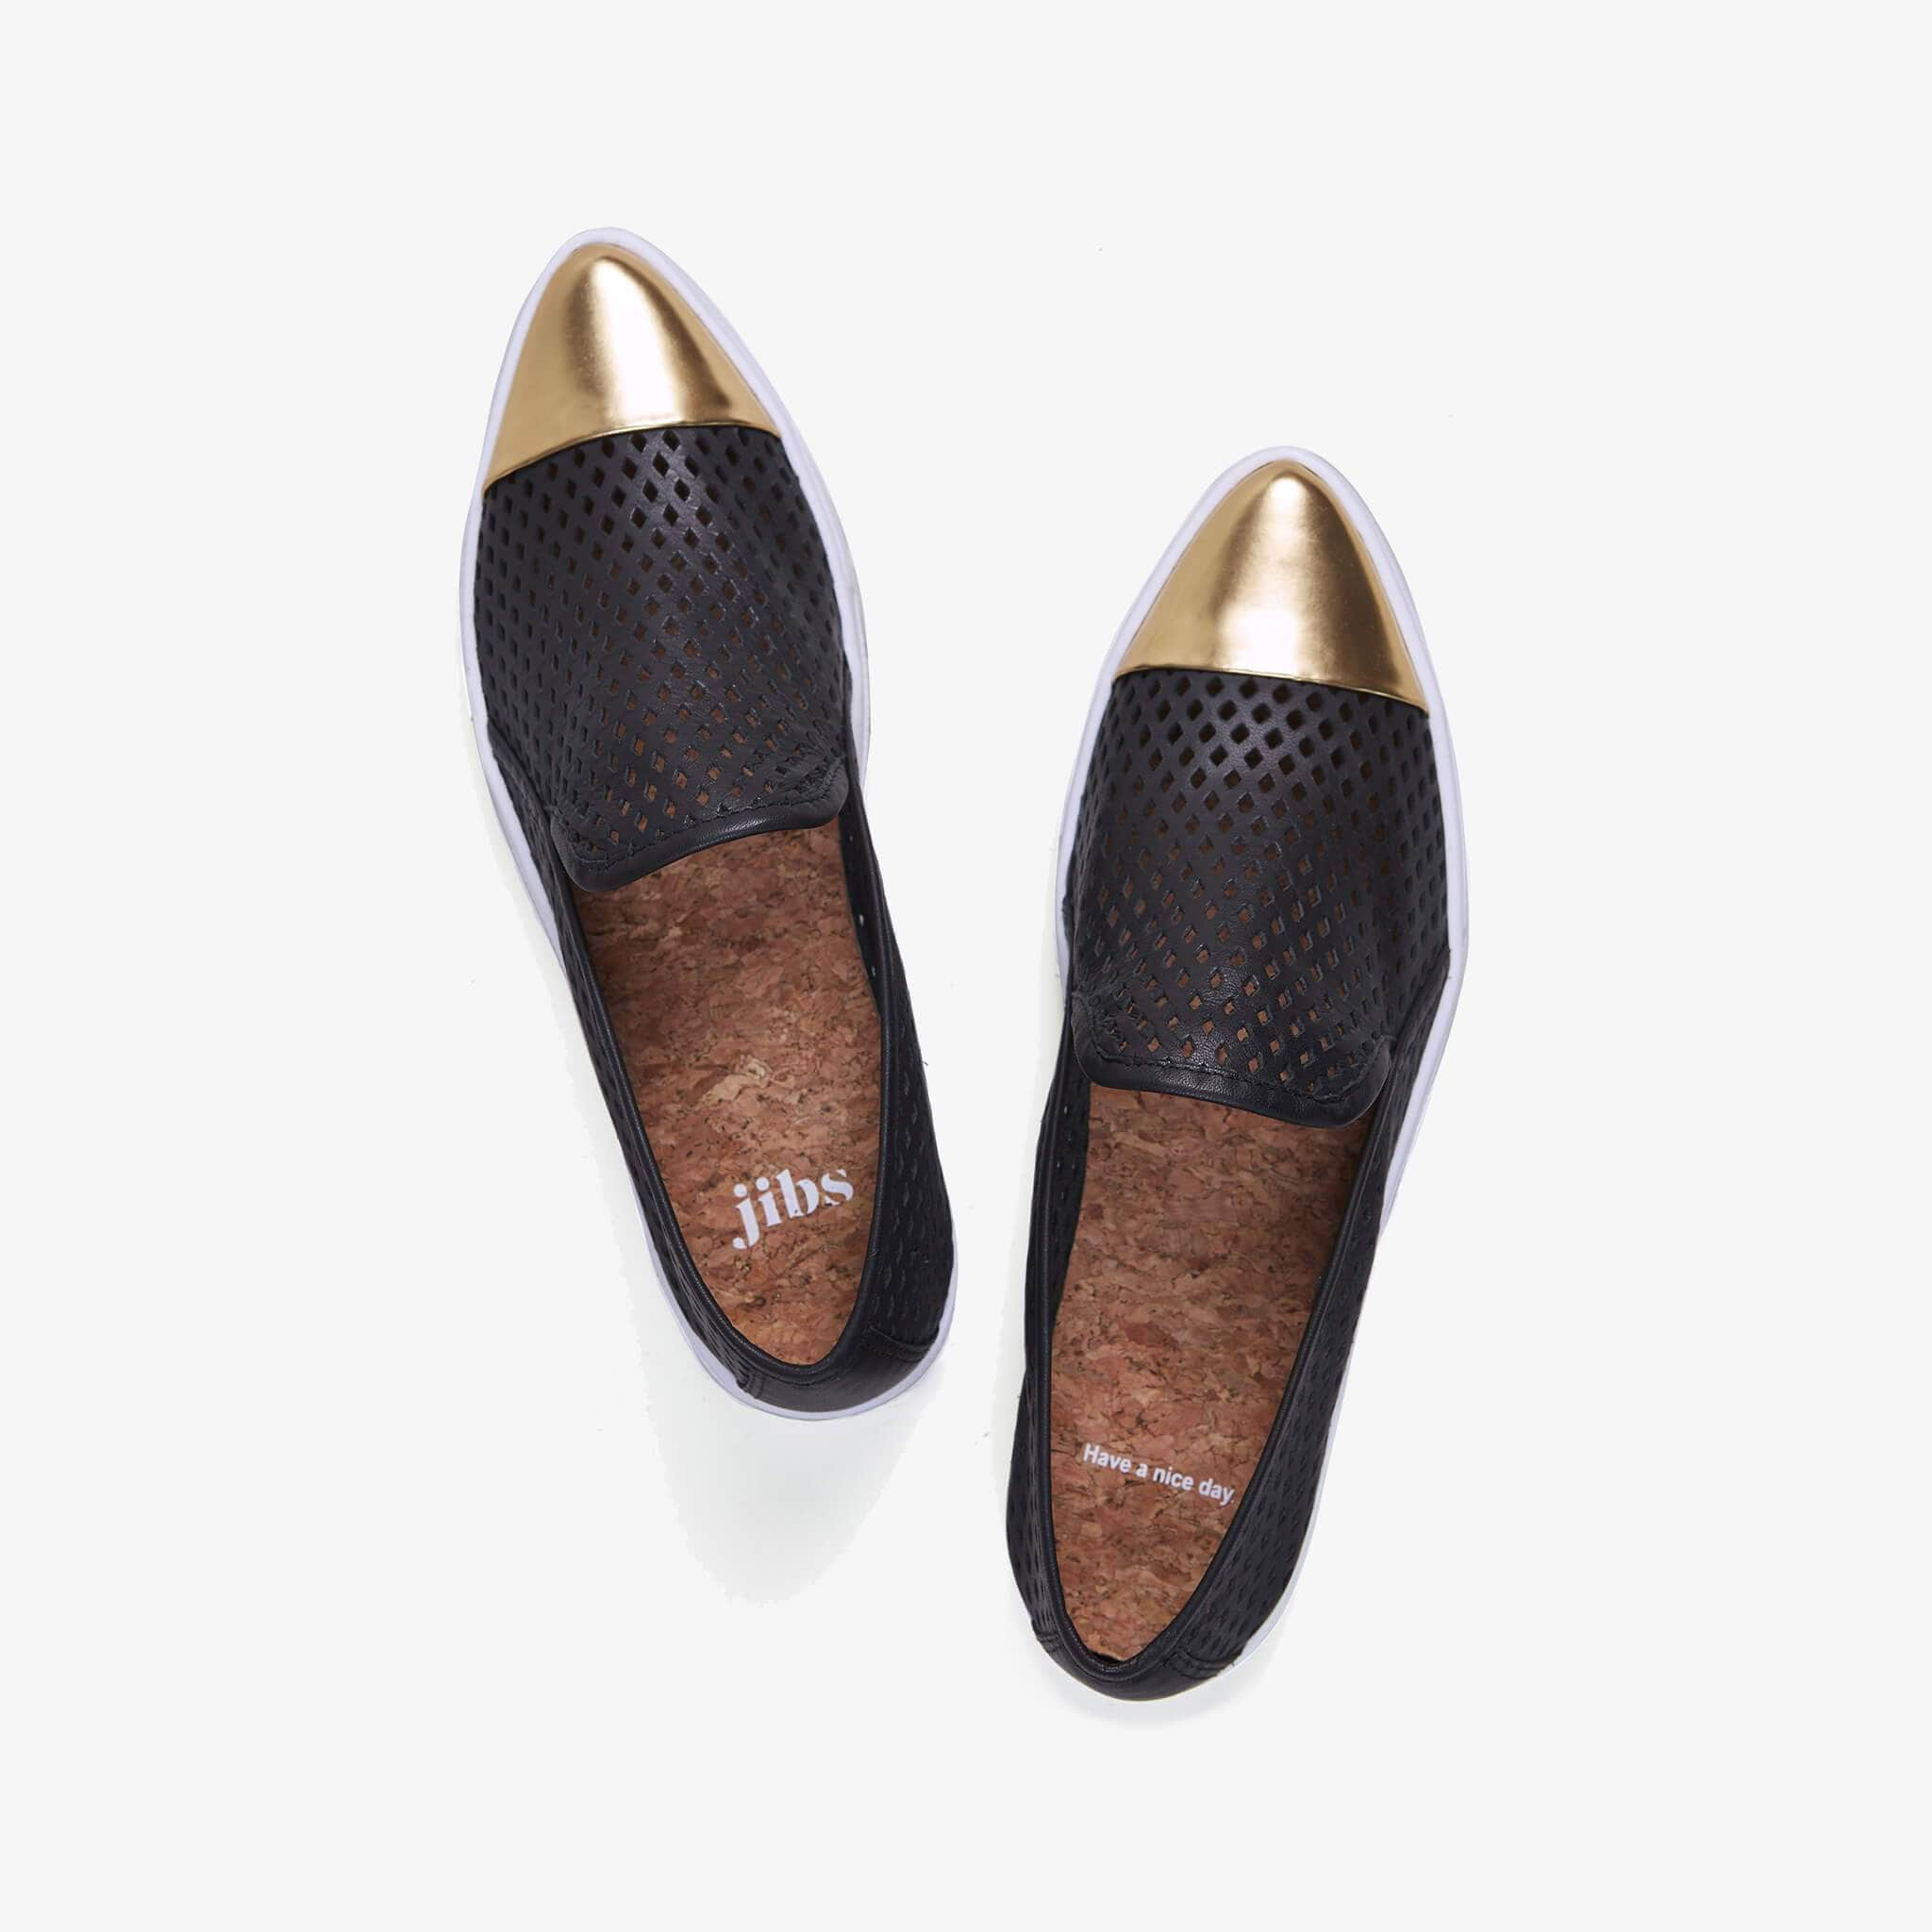 Jibs Slim Jet Black + Gold Slip On Sneaker Flat Top Have A Nice Day